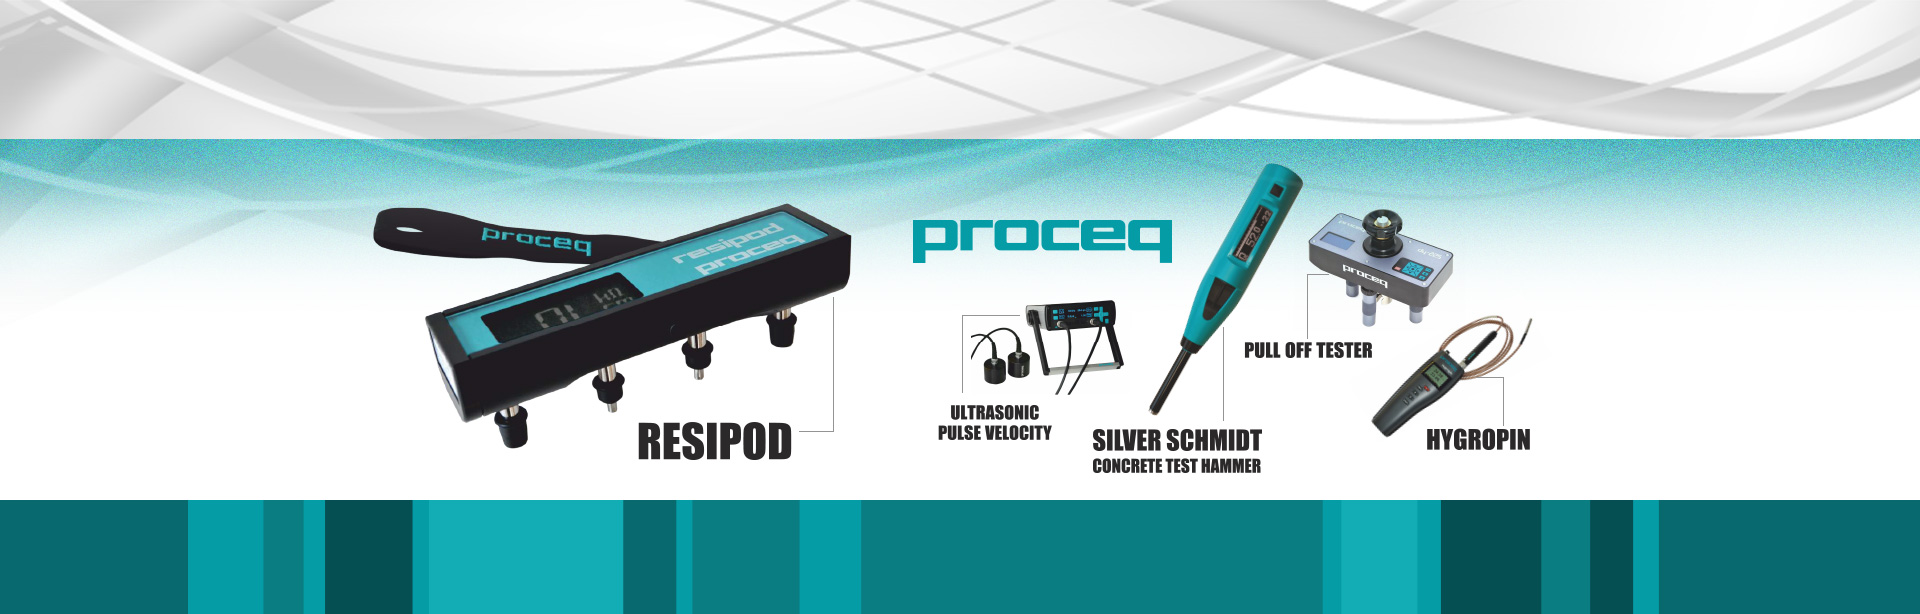 Authorized dealer of Proceq rebound Hammer, pull off tester.